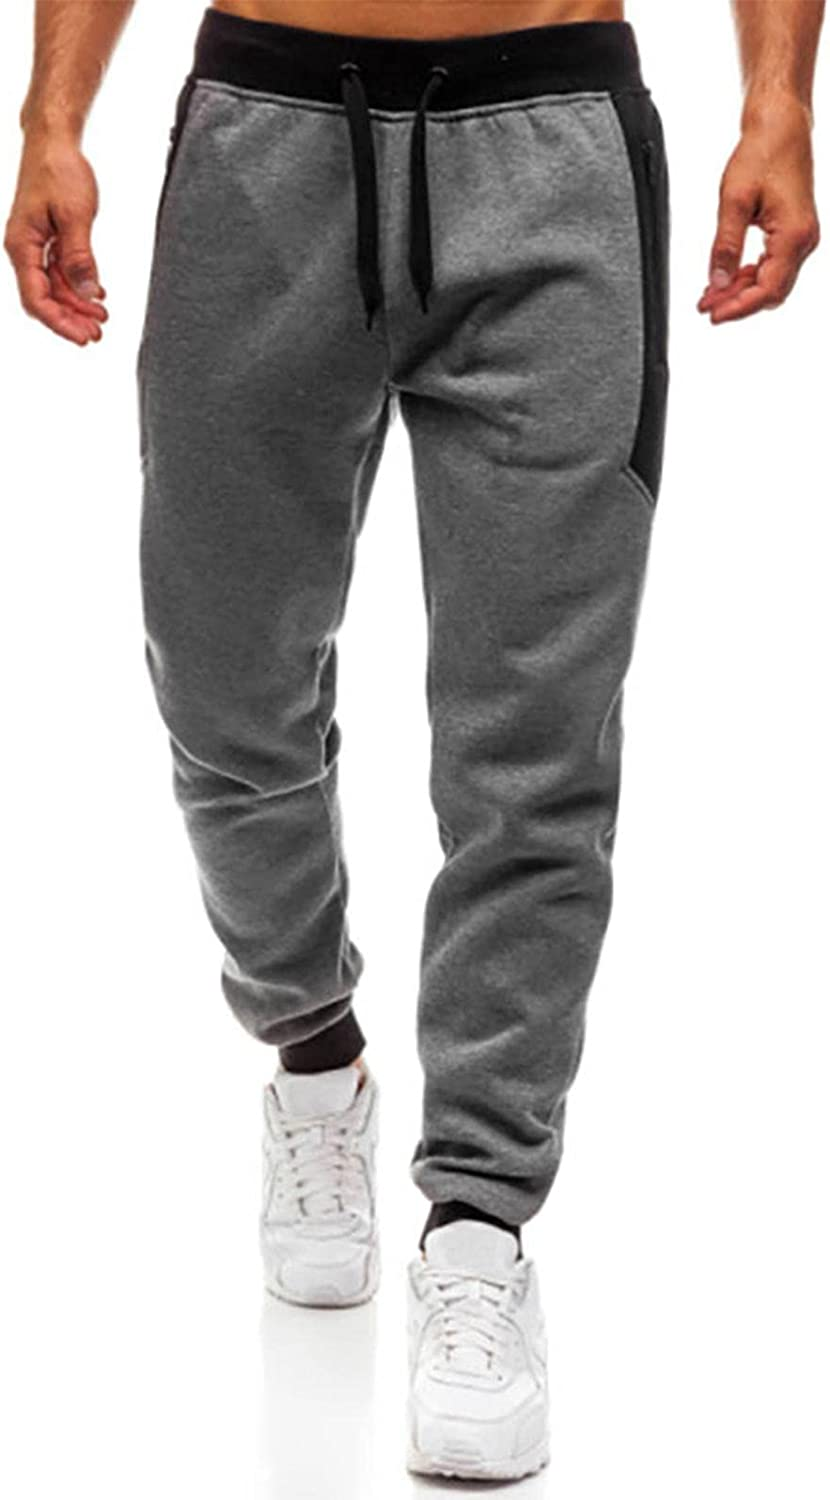 Beshion Mens Jogger Sweatpants Casual Ethnic Style String Printed Active Athletic Pants Soft for Sport Running Gym